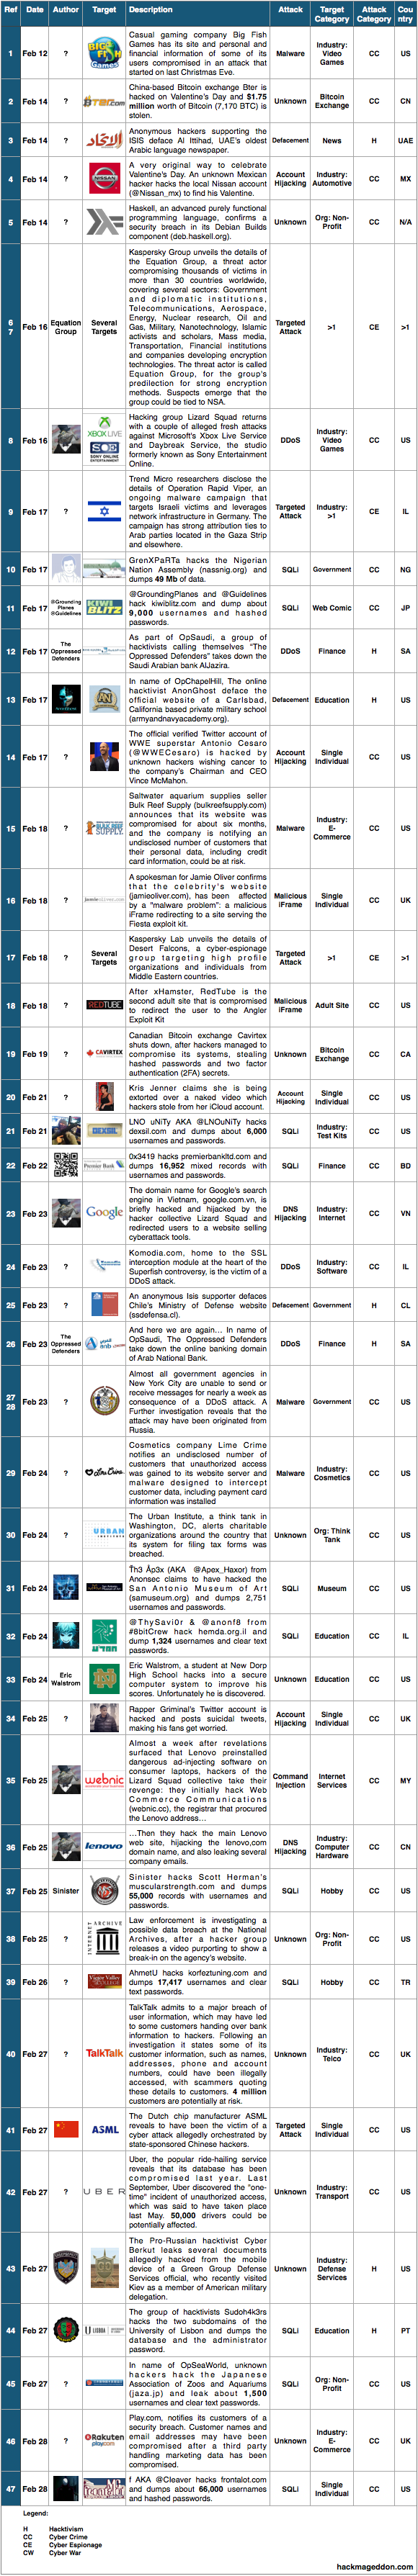 16-28 Feb 2015 Cyber Attacks Timelines